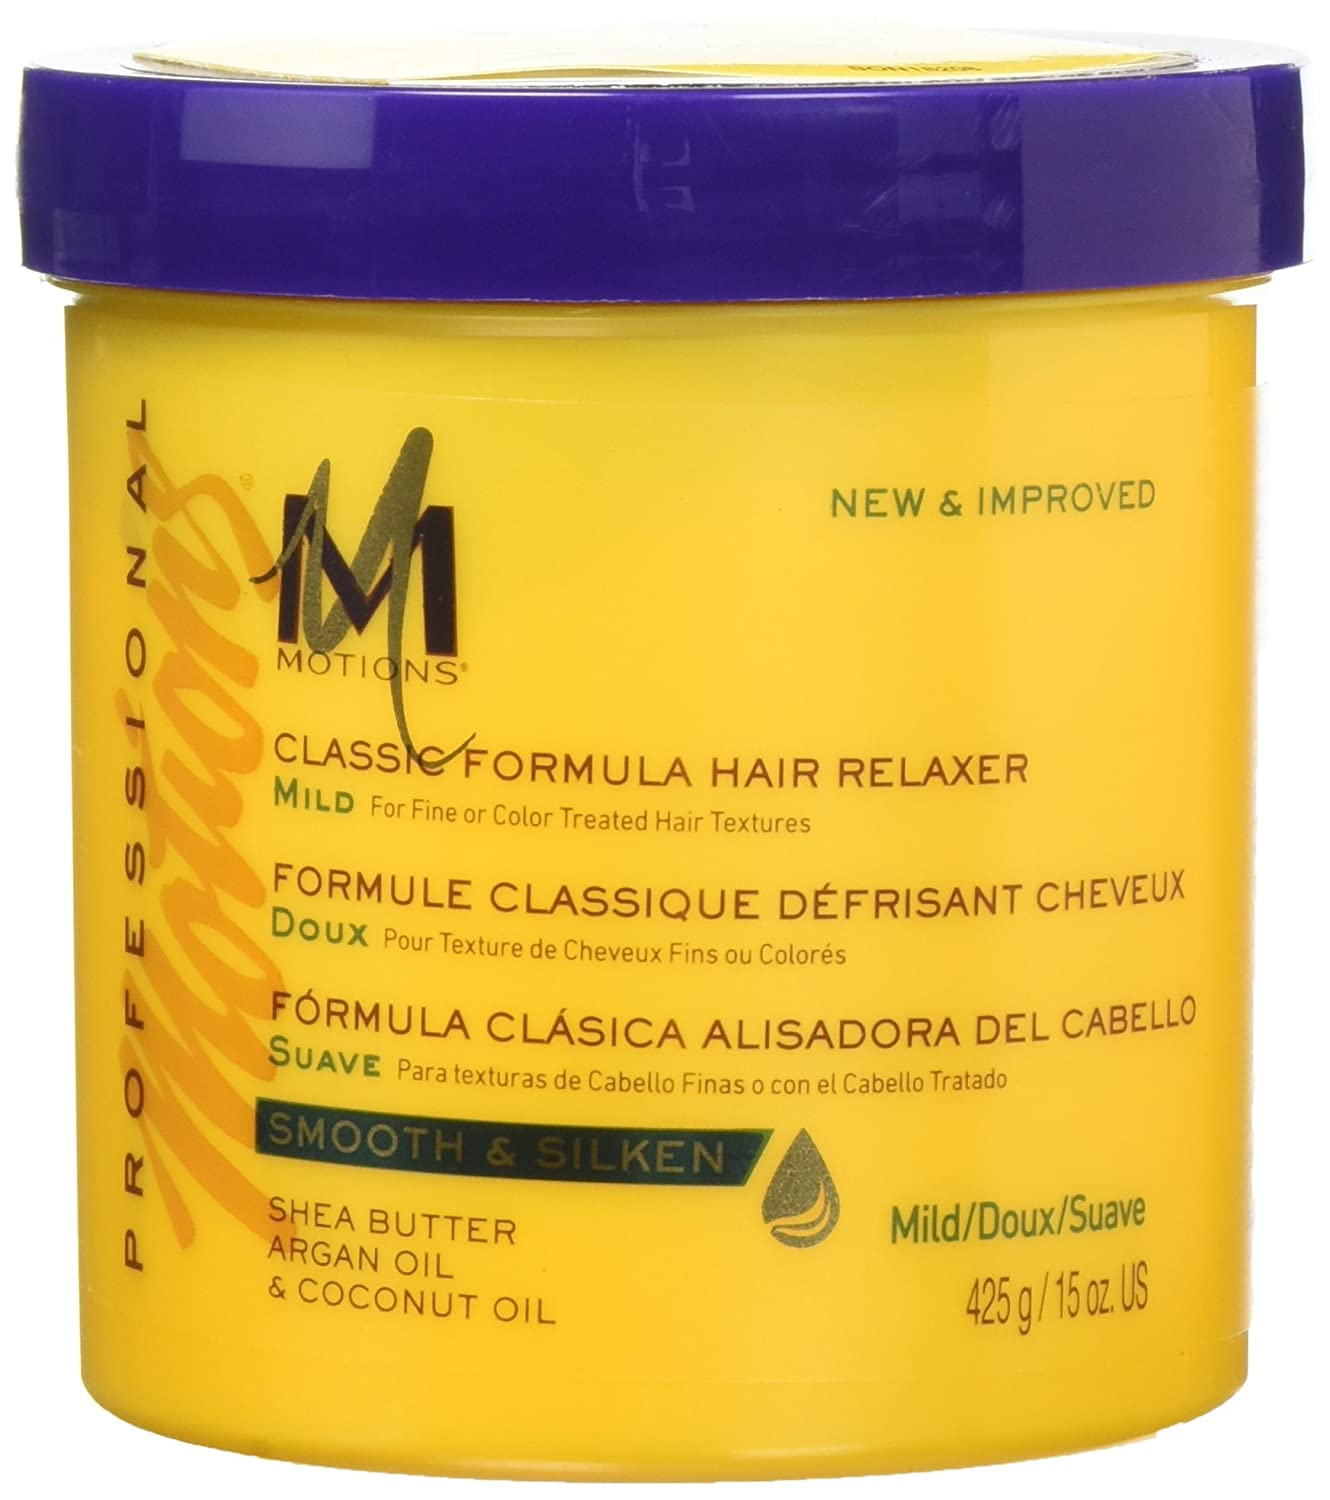 Motions Classic Formula Hair Relaxer - Mild 15oz by Motions 75272